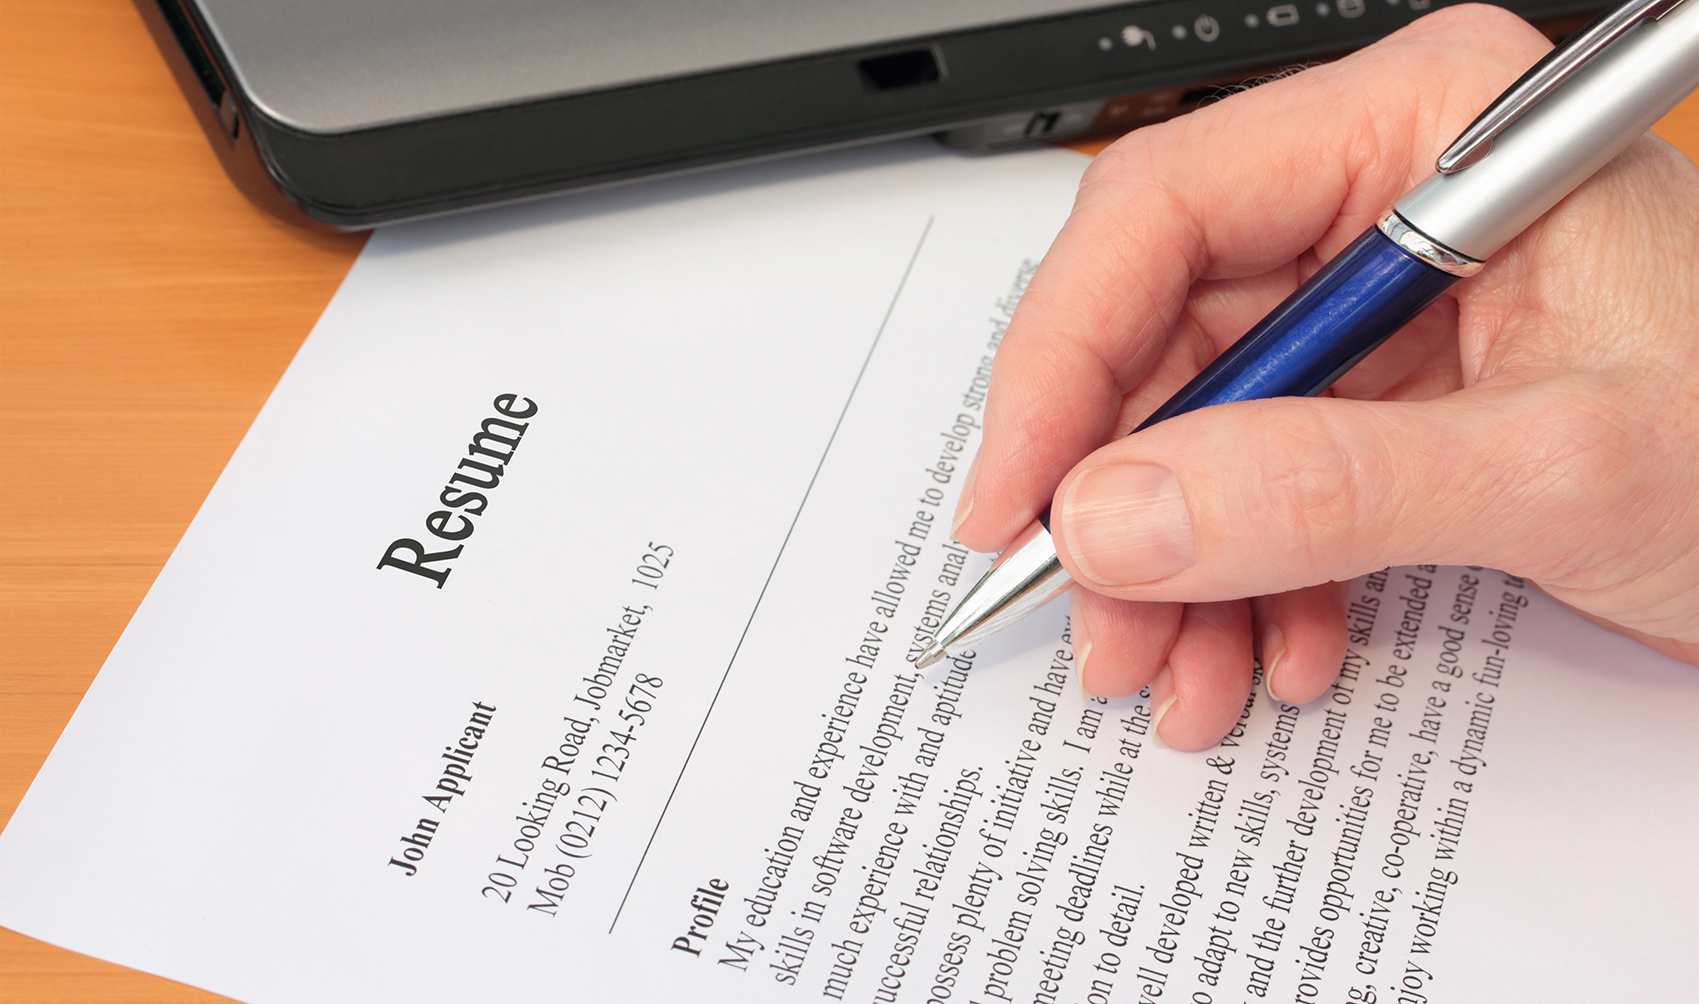 If you're trying to get into the film industry, you'll notice resume writing works a bit differently here. Check out our guide to writing a resume for film.